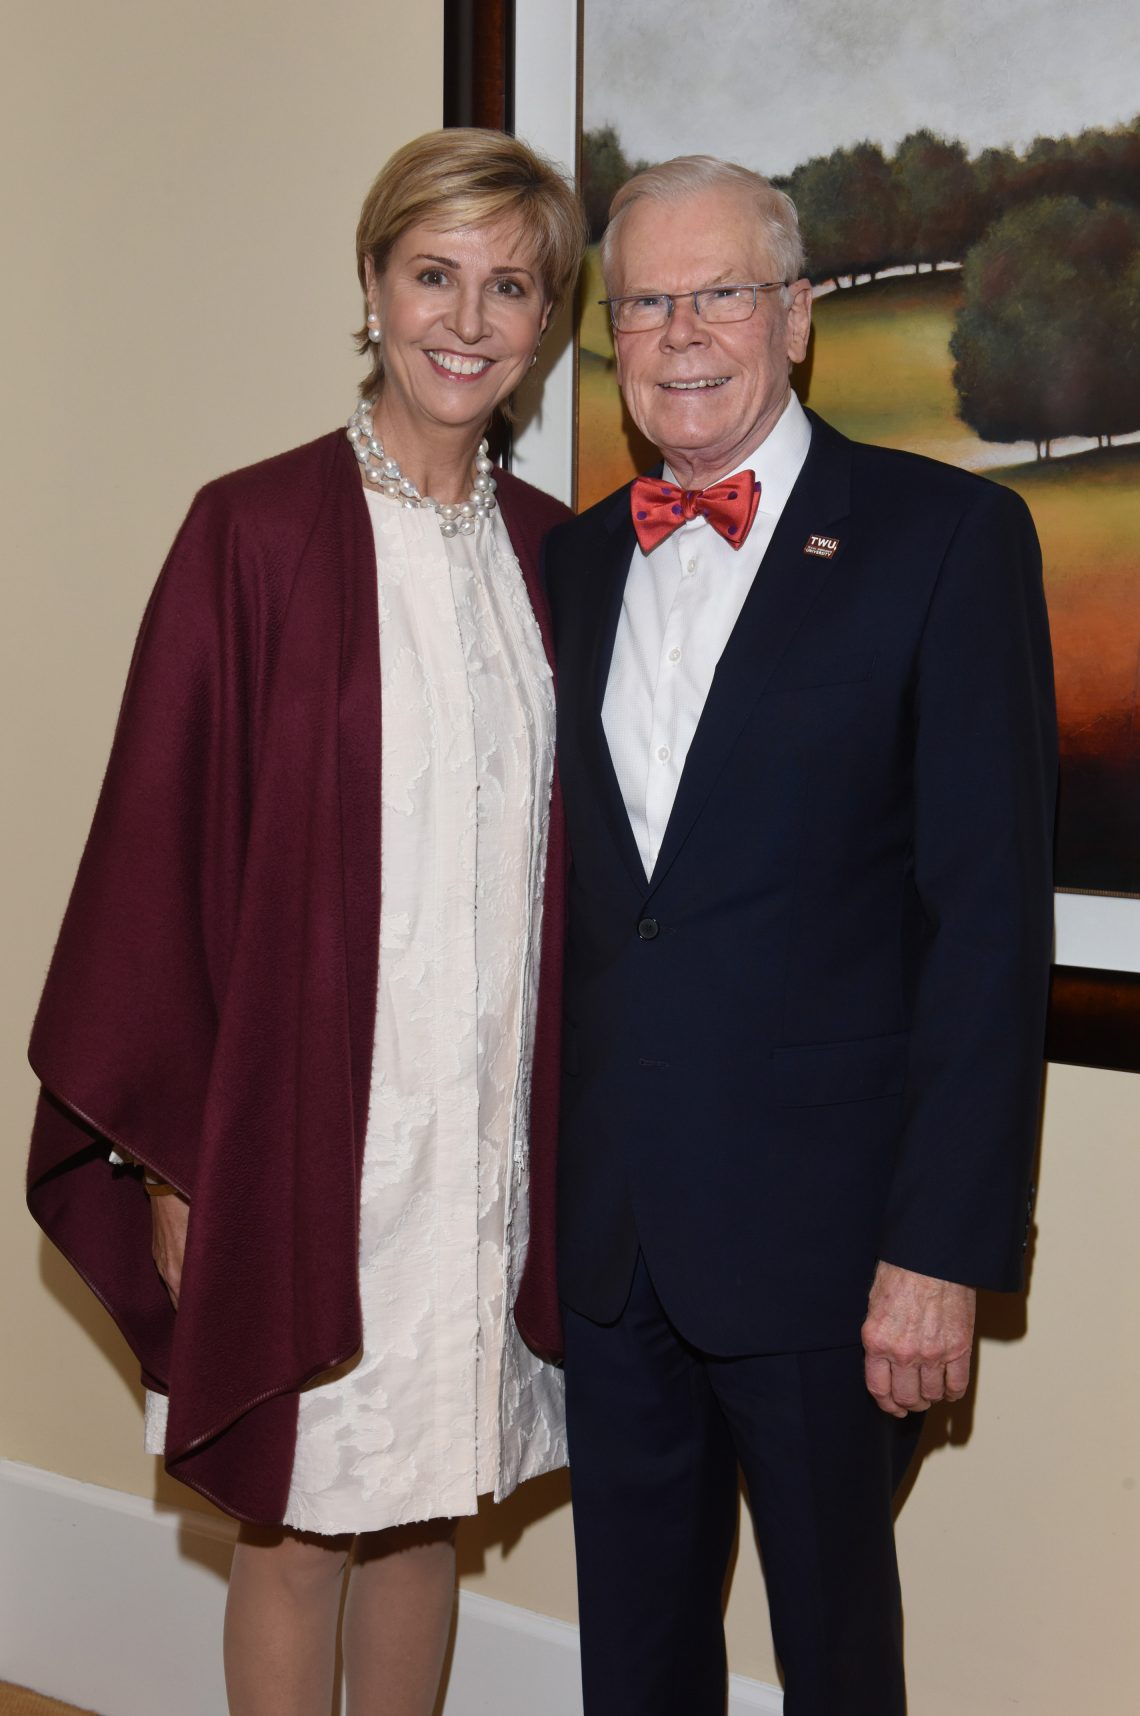 TEXAS WOMAN'S UNIVERSITY HONORS NORMAN P. BAGWELL WITH 16TH ANNUAL VIRGINIA CHANDLER DYKES LEADERSHIP AWARD